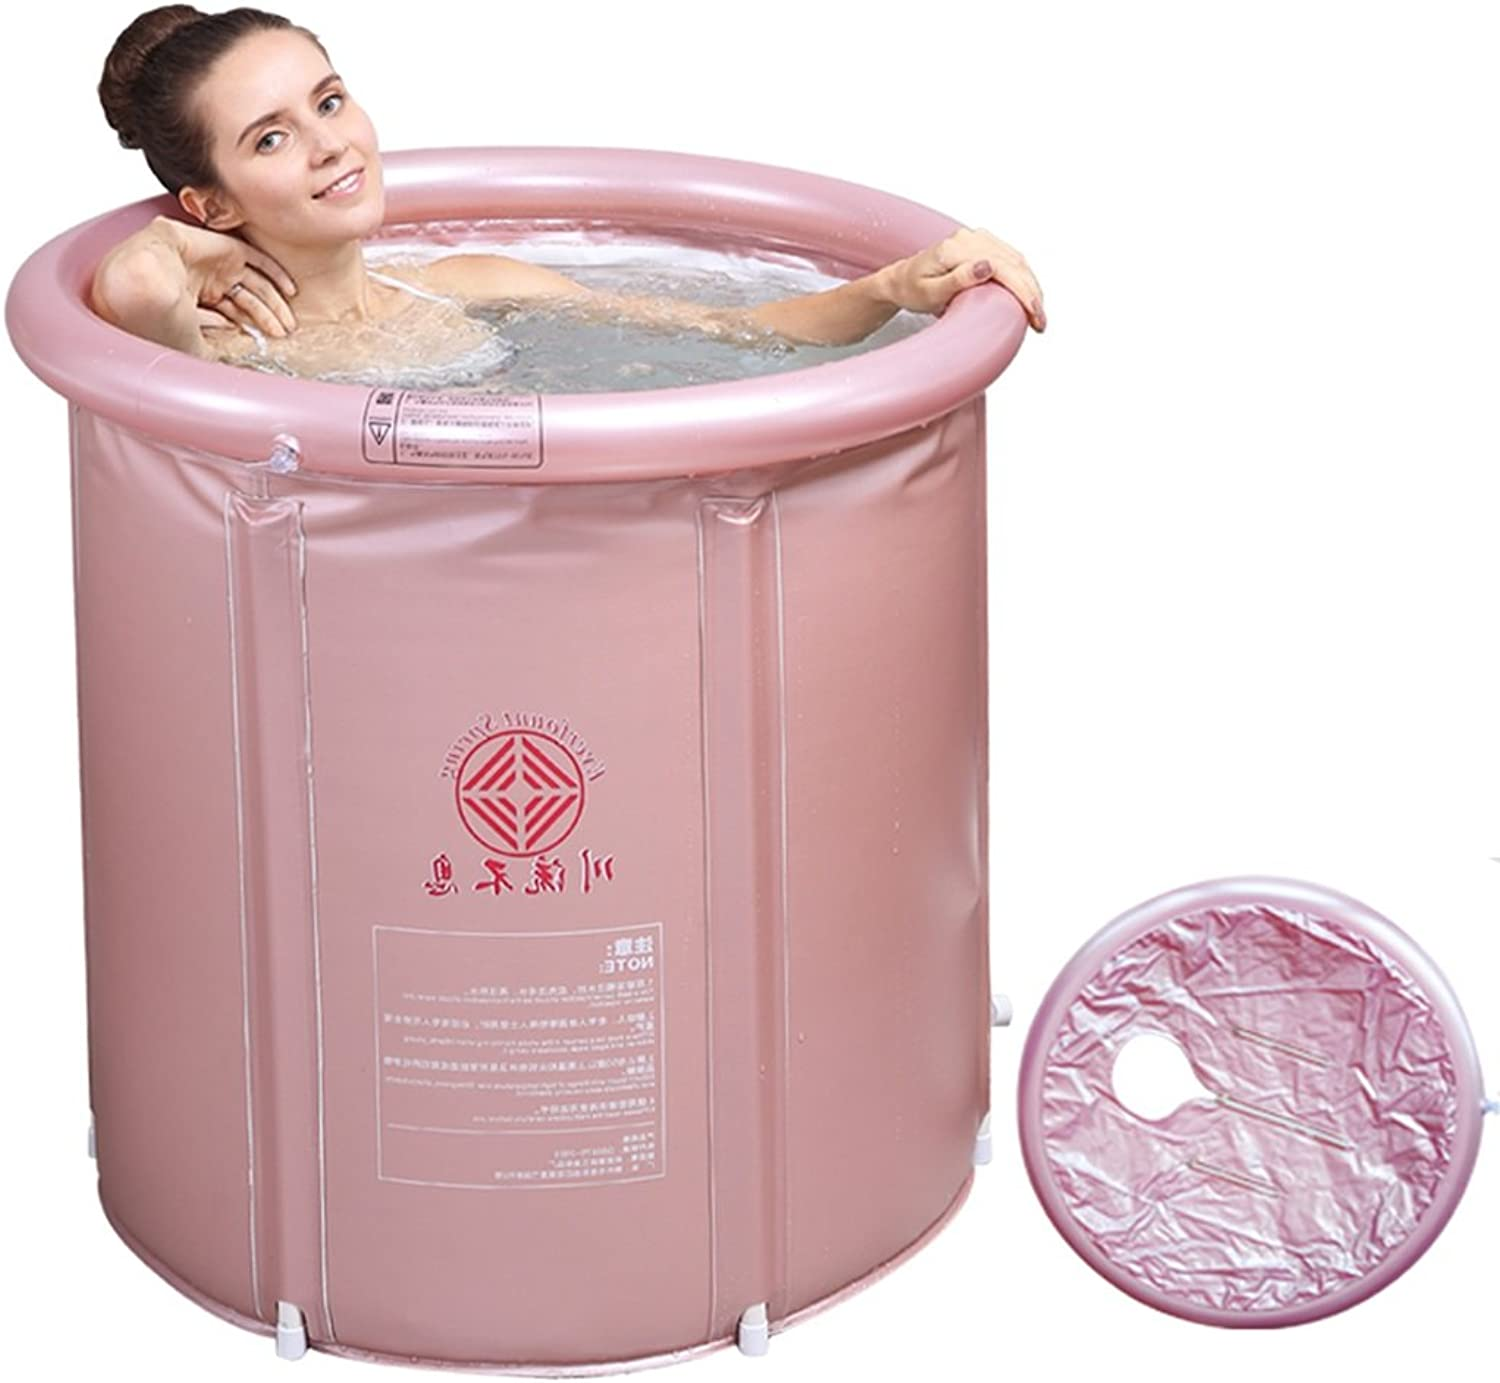 Heating Bath Tub Folding Thickening Bath Bath Tub Adult Inflatable Home Khan Steamed Fumigation Barrel ( Size   Trumpet )